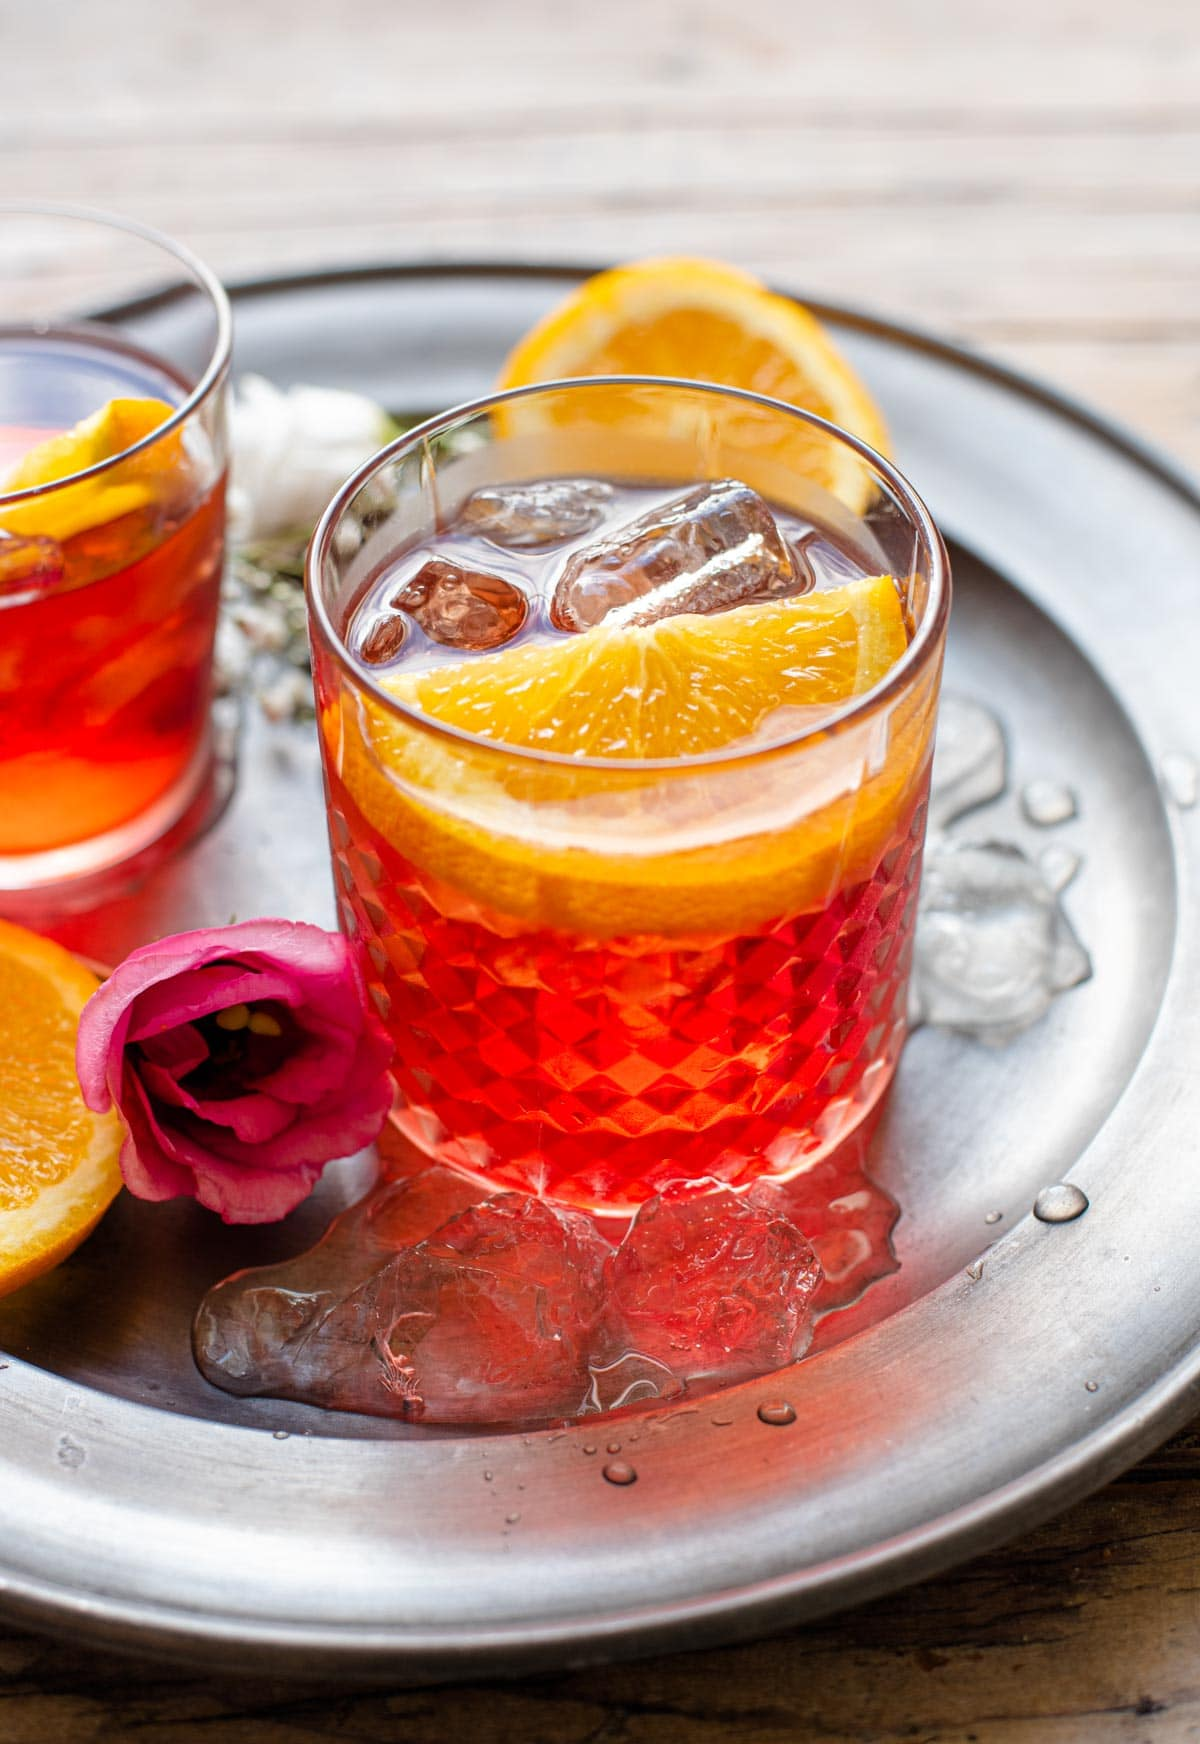 A Negroni cocktail in a glass with a slice of orange